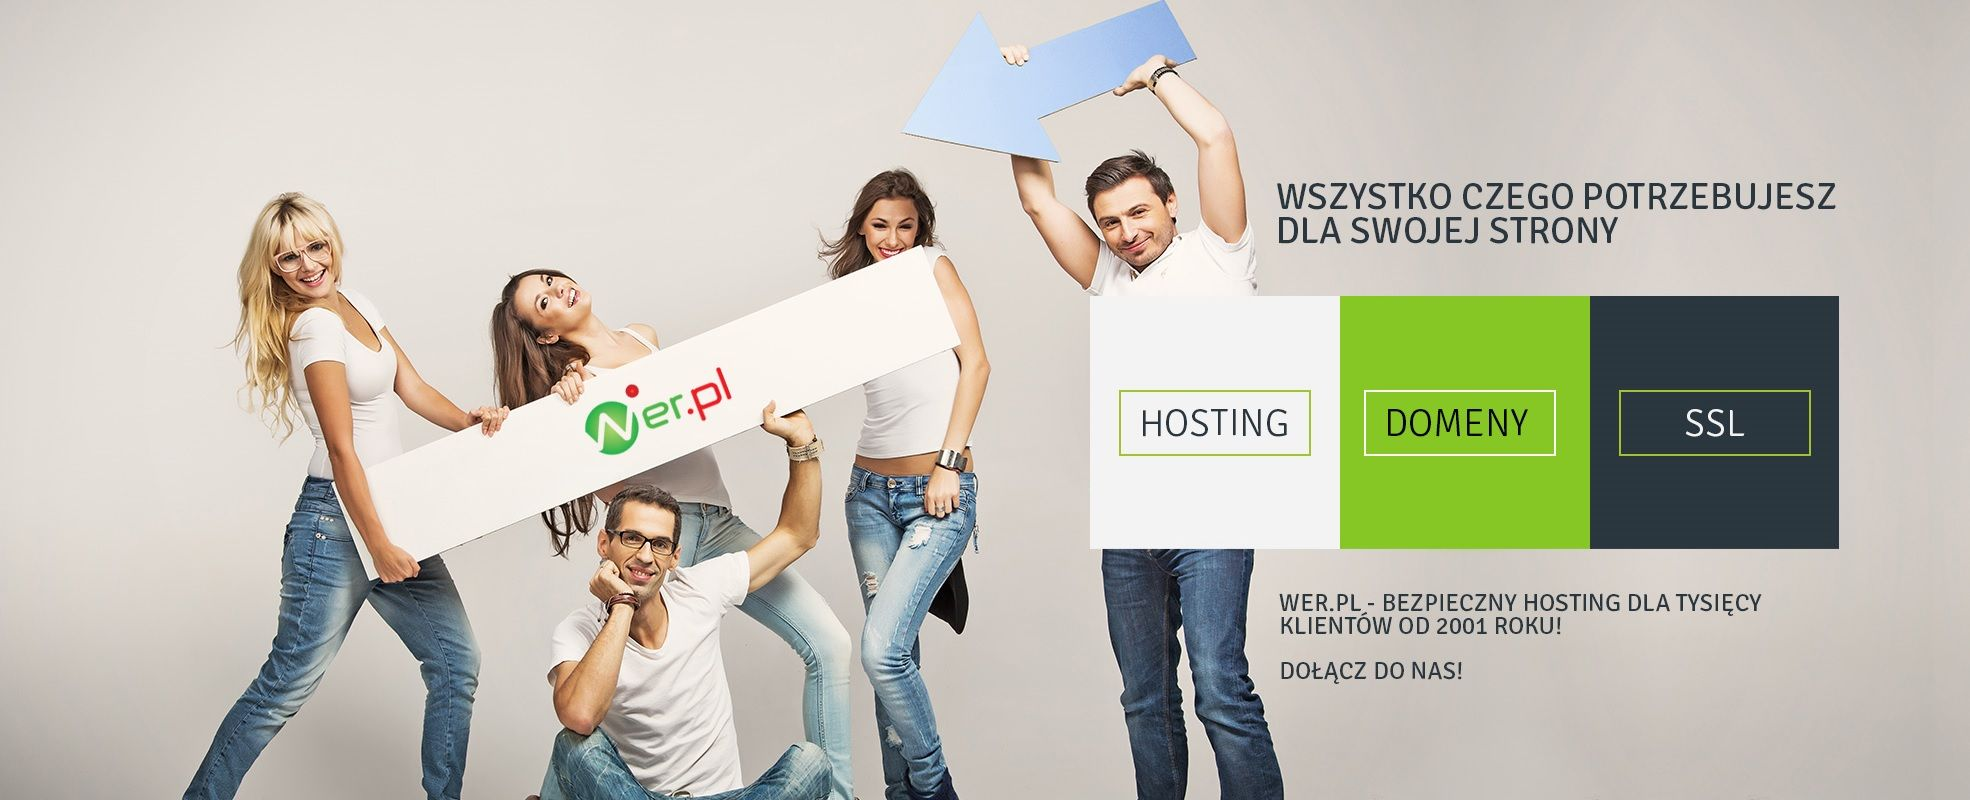 Hosting, Domeny, SSL